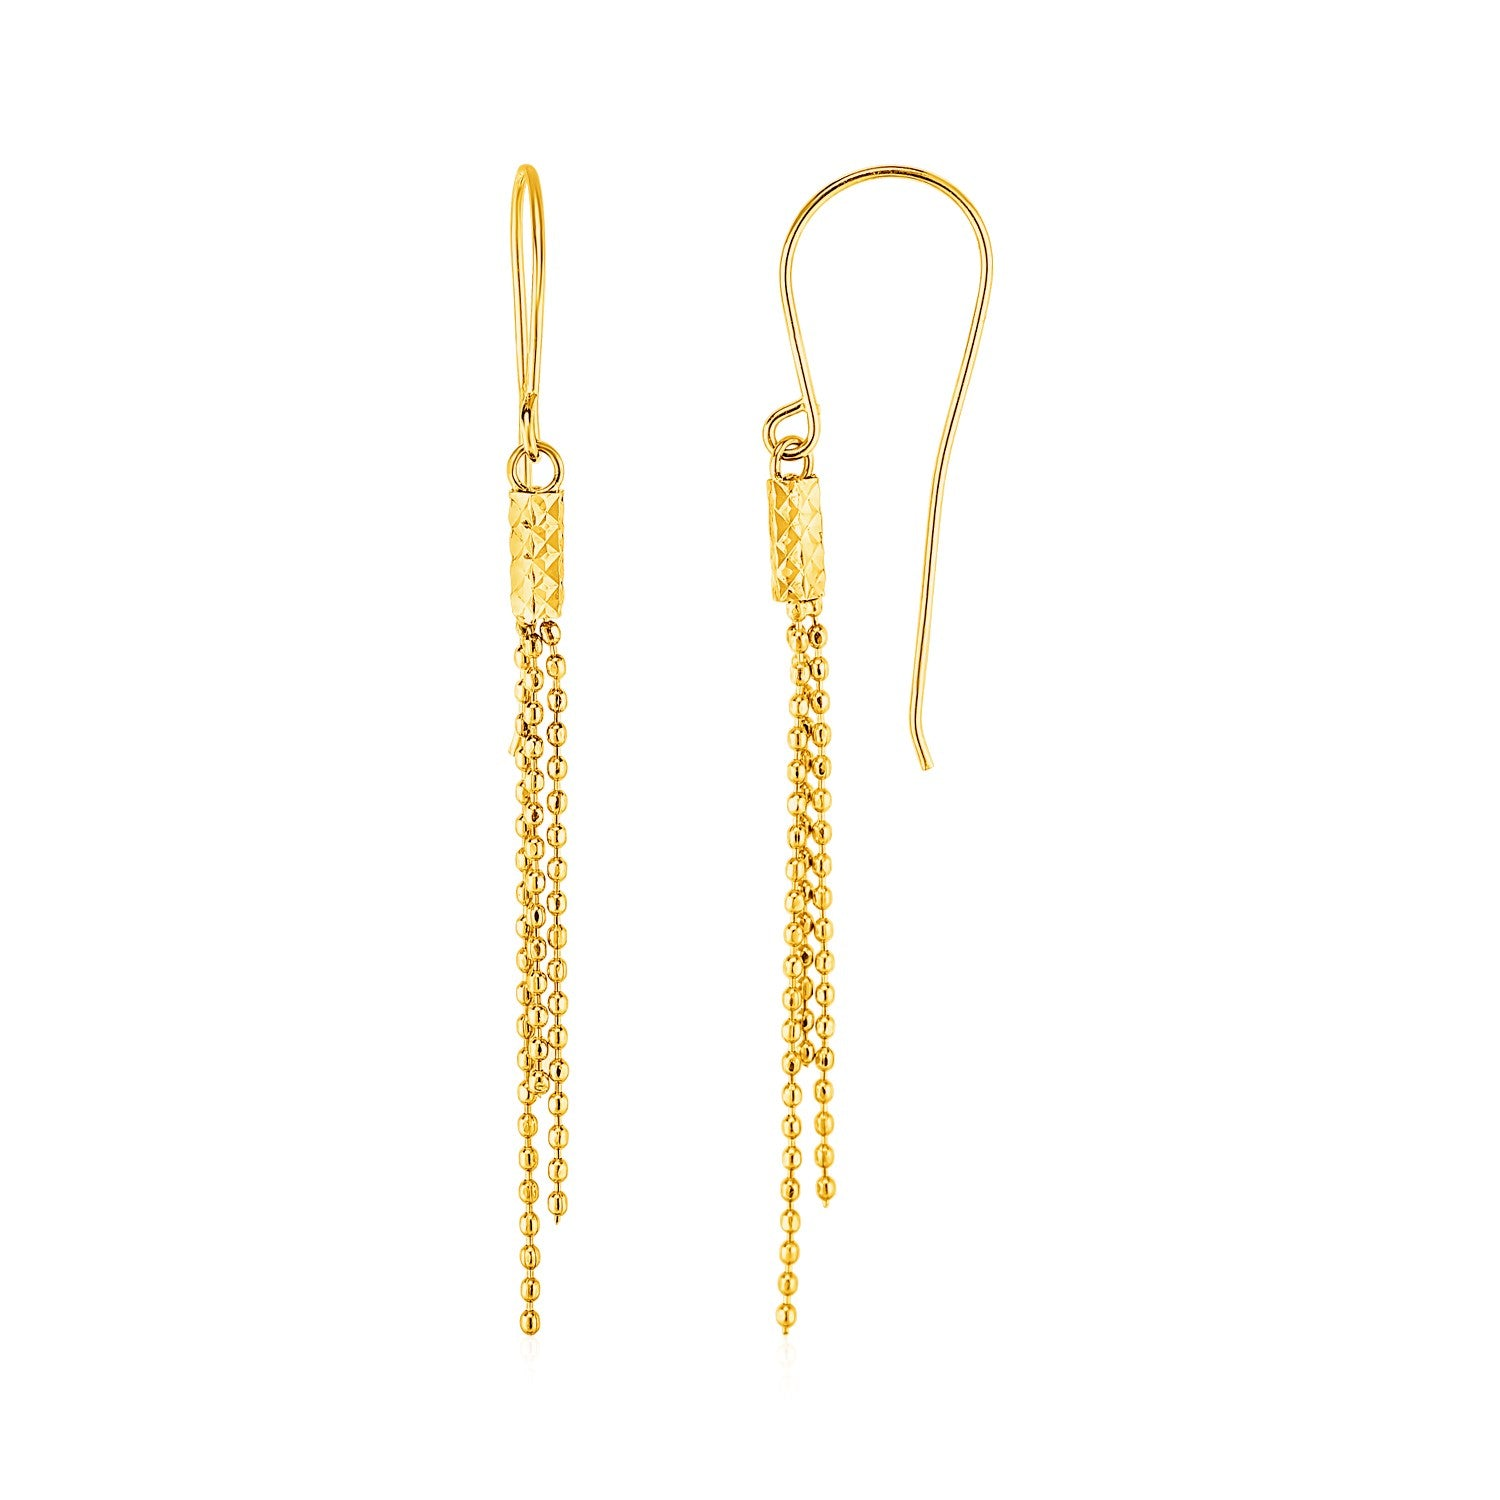 Modern Hollywood Style Classy Earrings with Fine Chain Dangles in 10K Yellow Gold